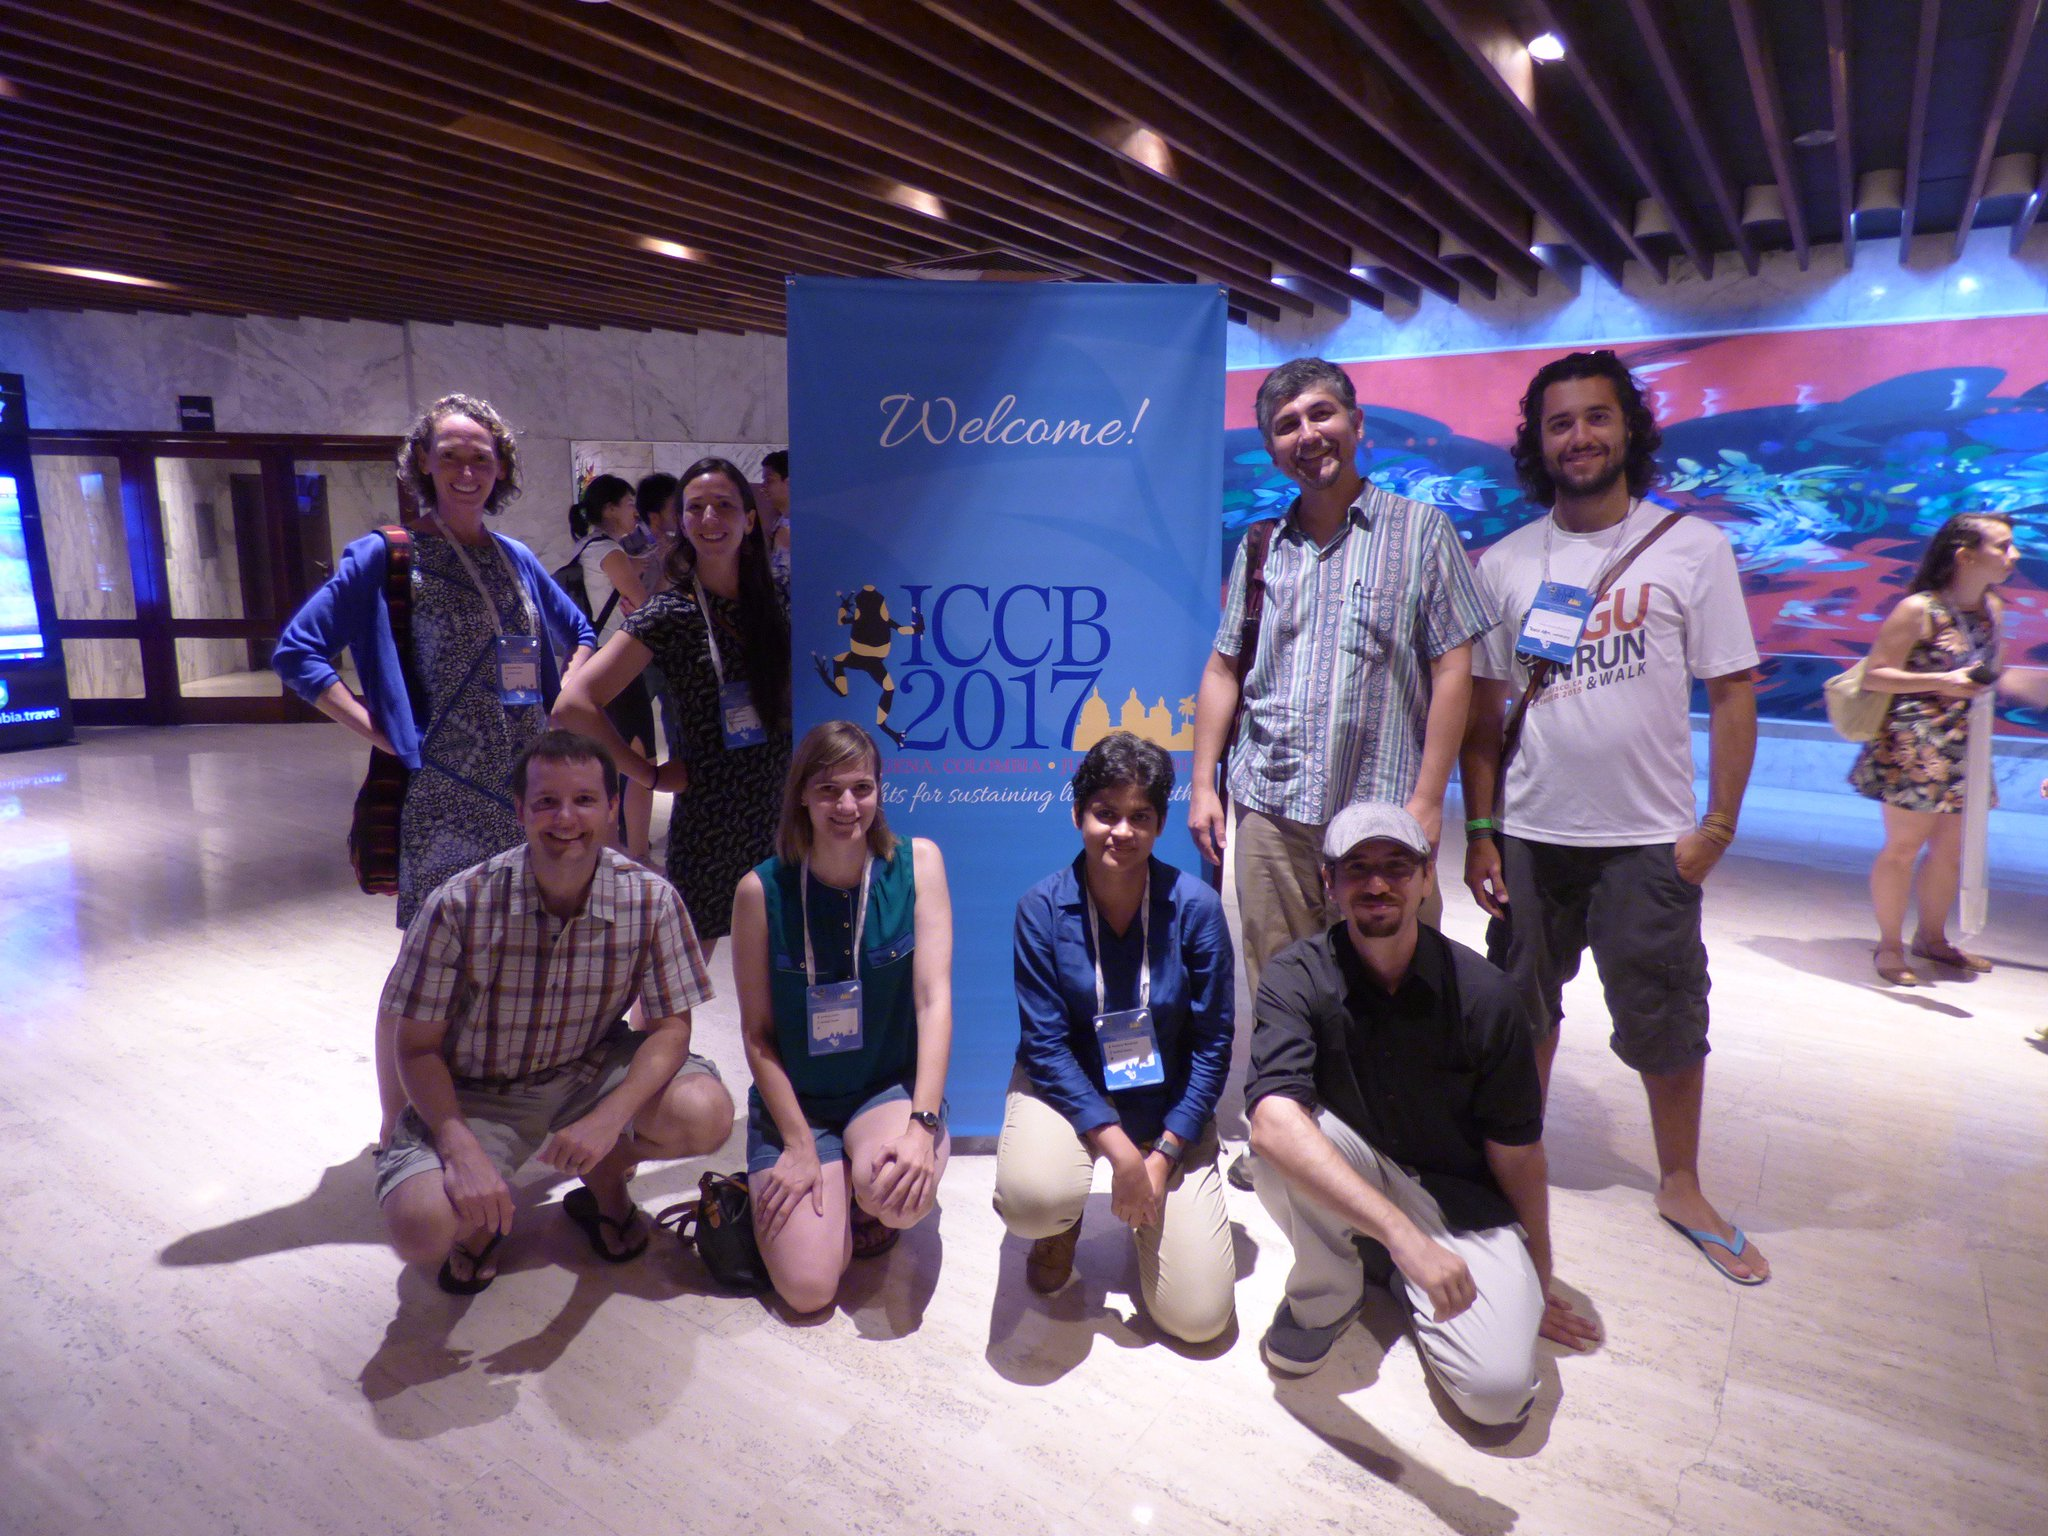 Check out our crop of past, present, and future students representing at #ICCB2017 for #conservation, more to come at #ICCB2019! https://t.co/IxB0PC6xUa